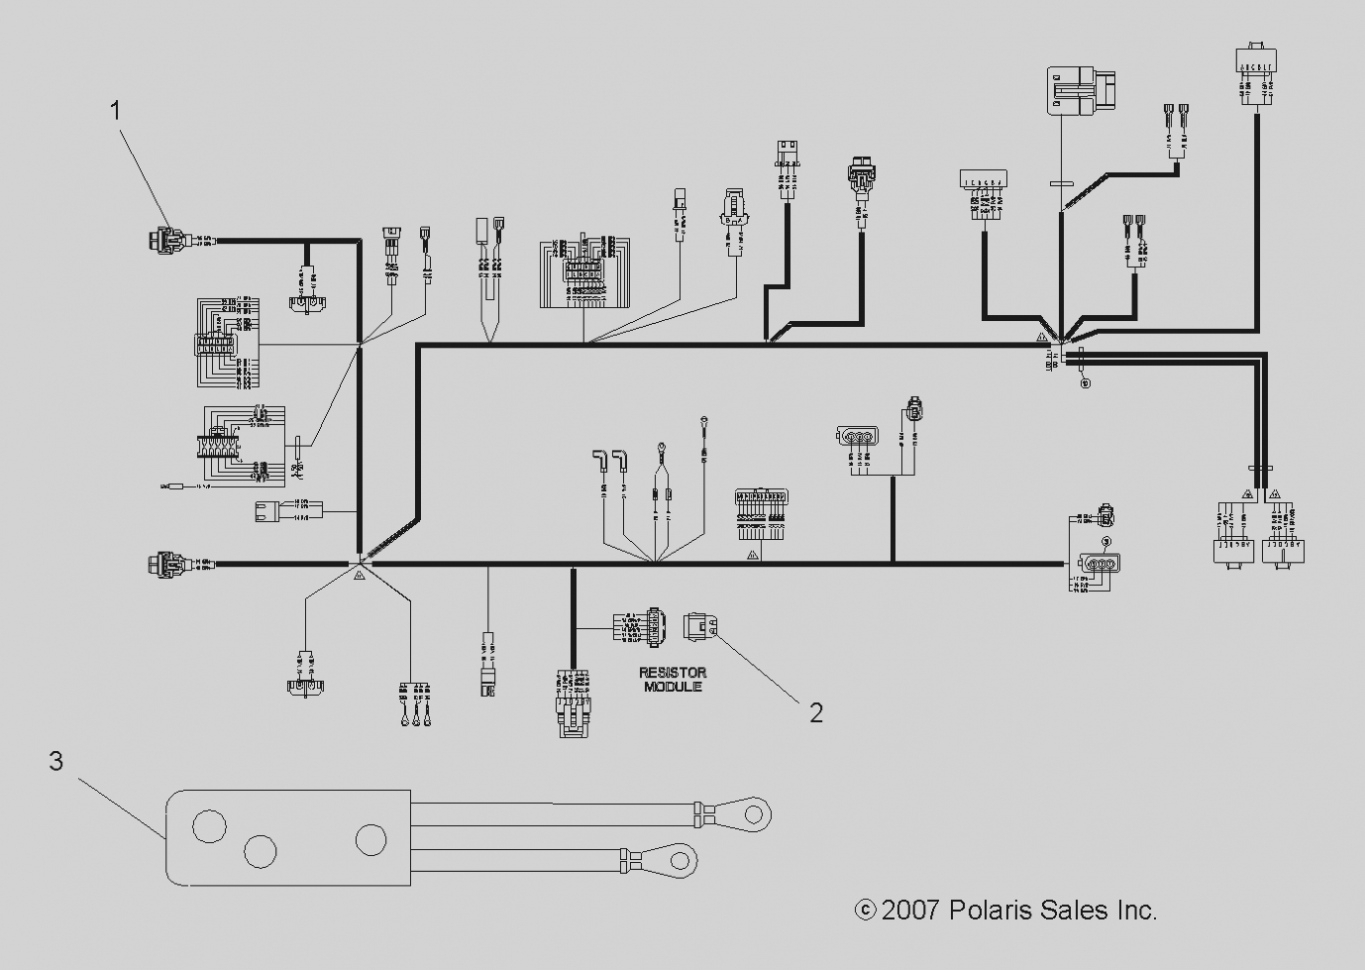 Polaris Ranger Winch Wiring Diagram